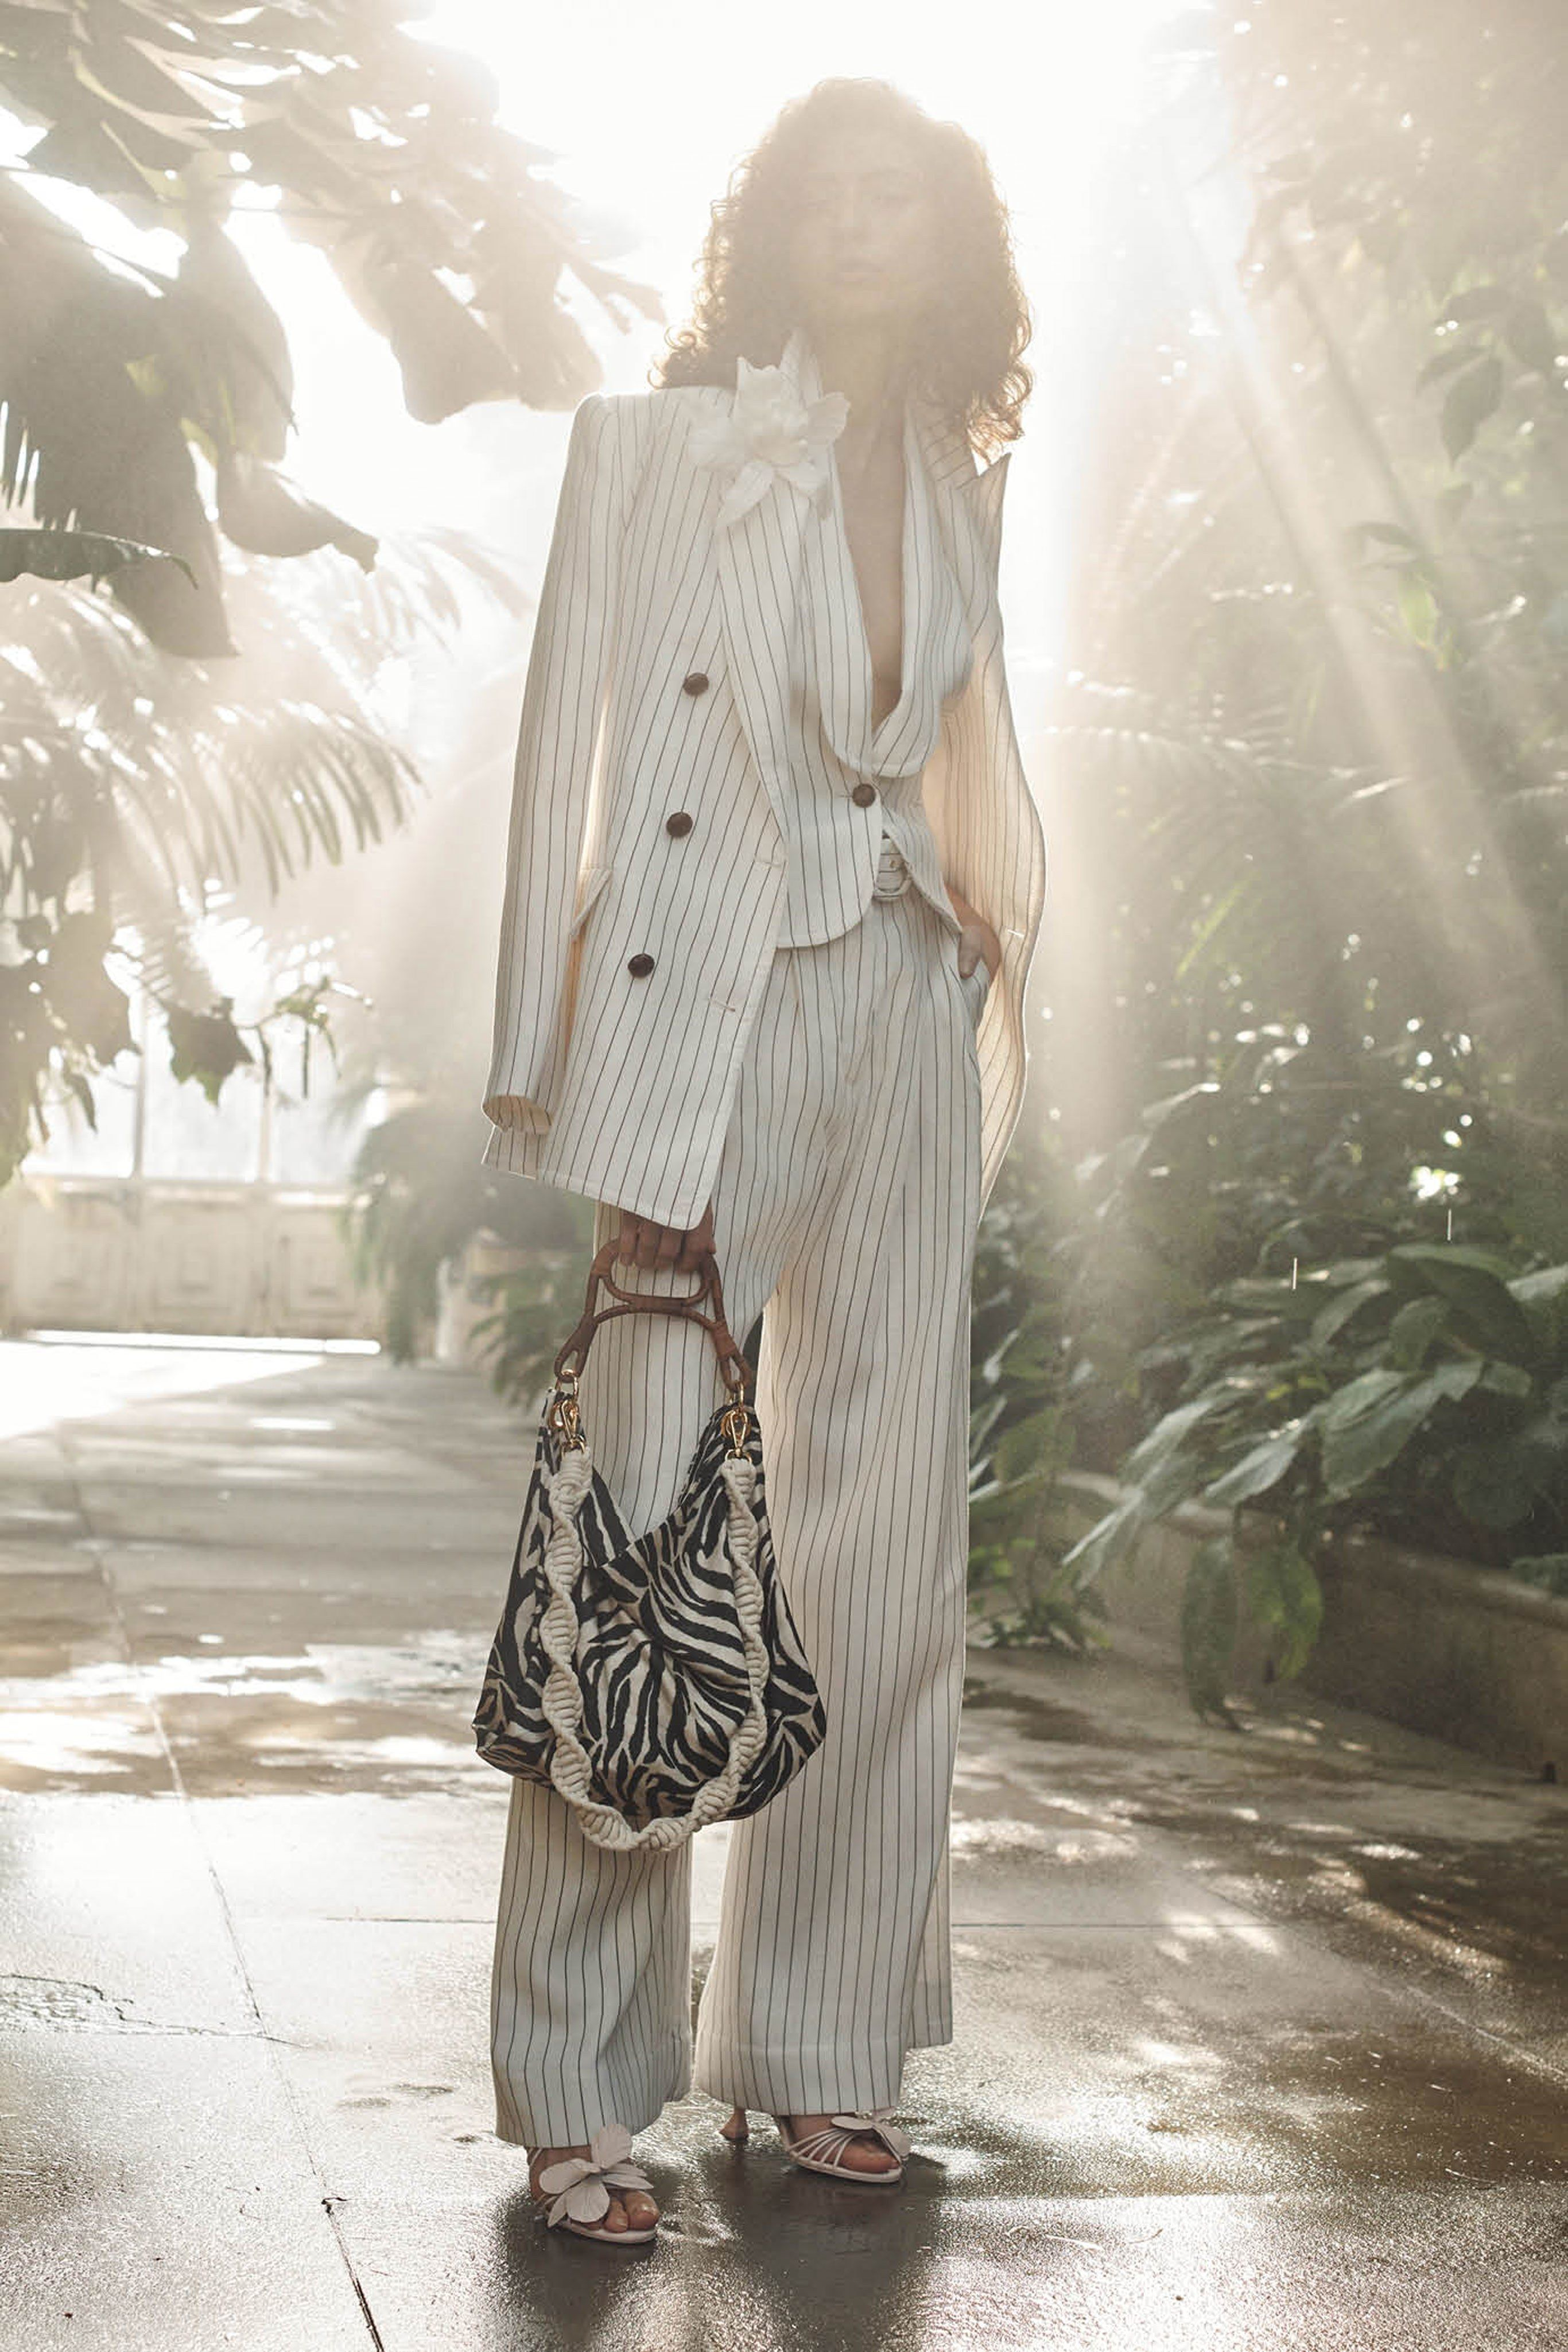 Zimmermann resort fashion show fashion pinterest resorts